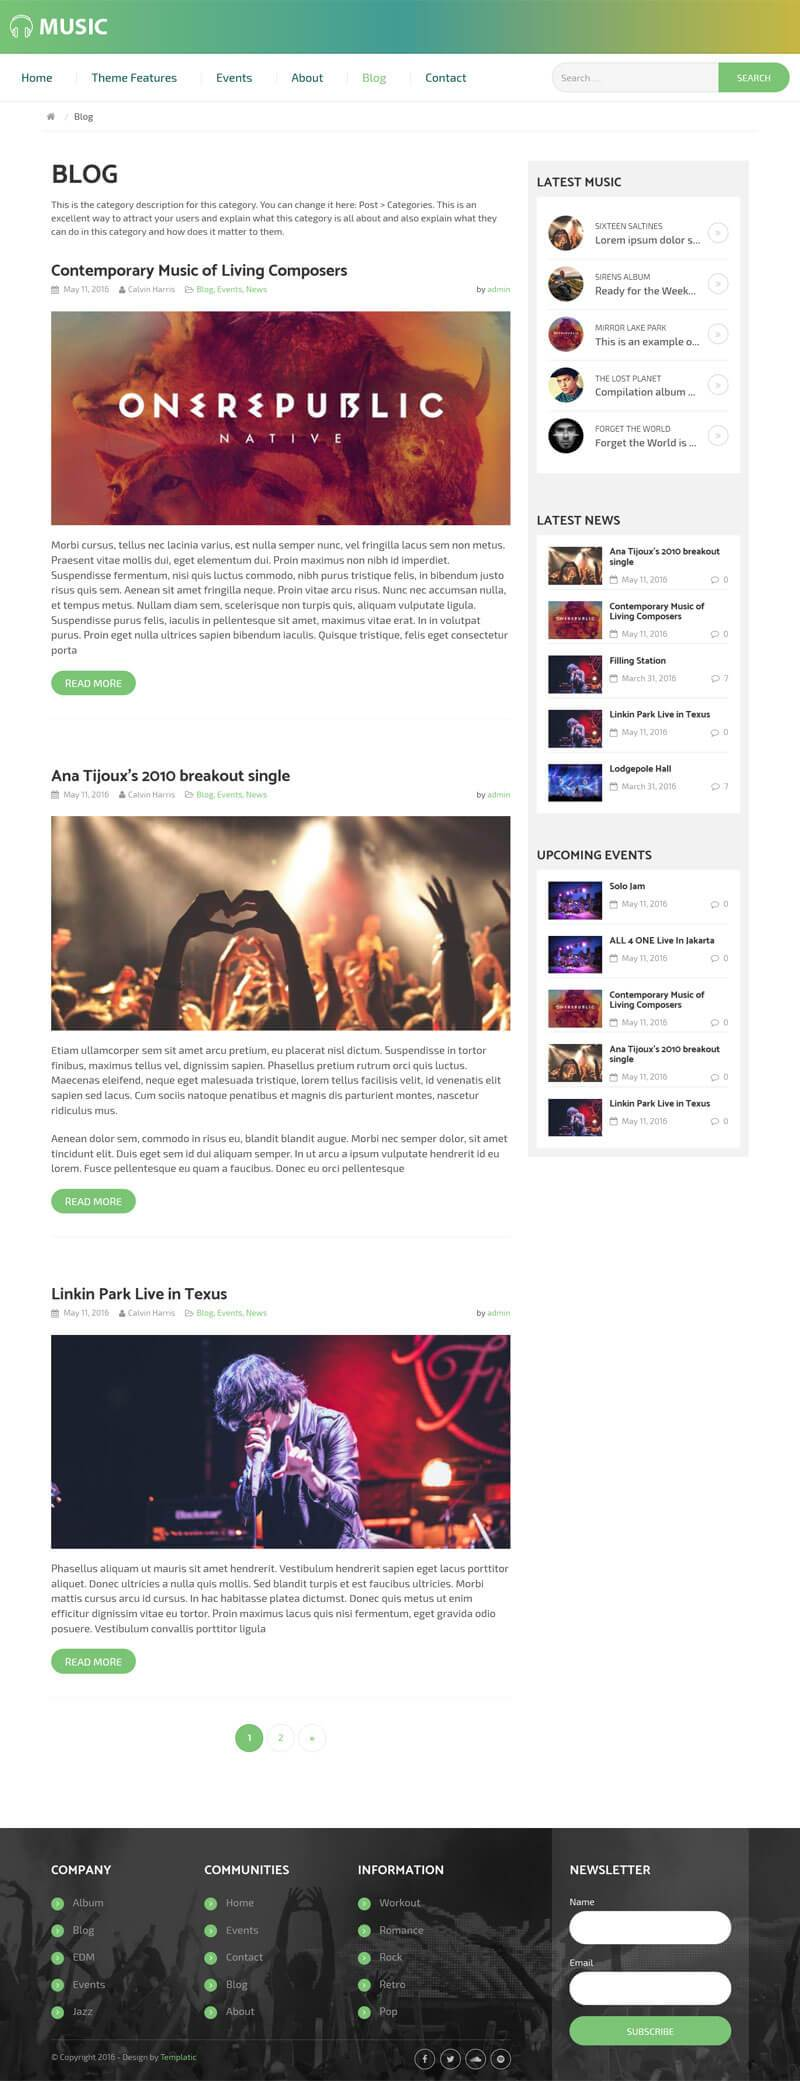 Music Theme With Blog